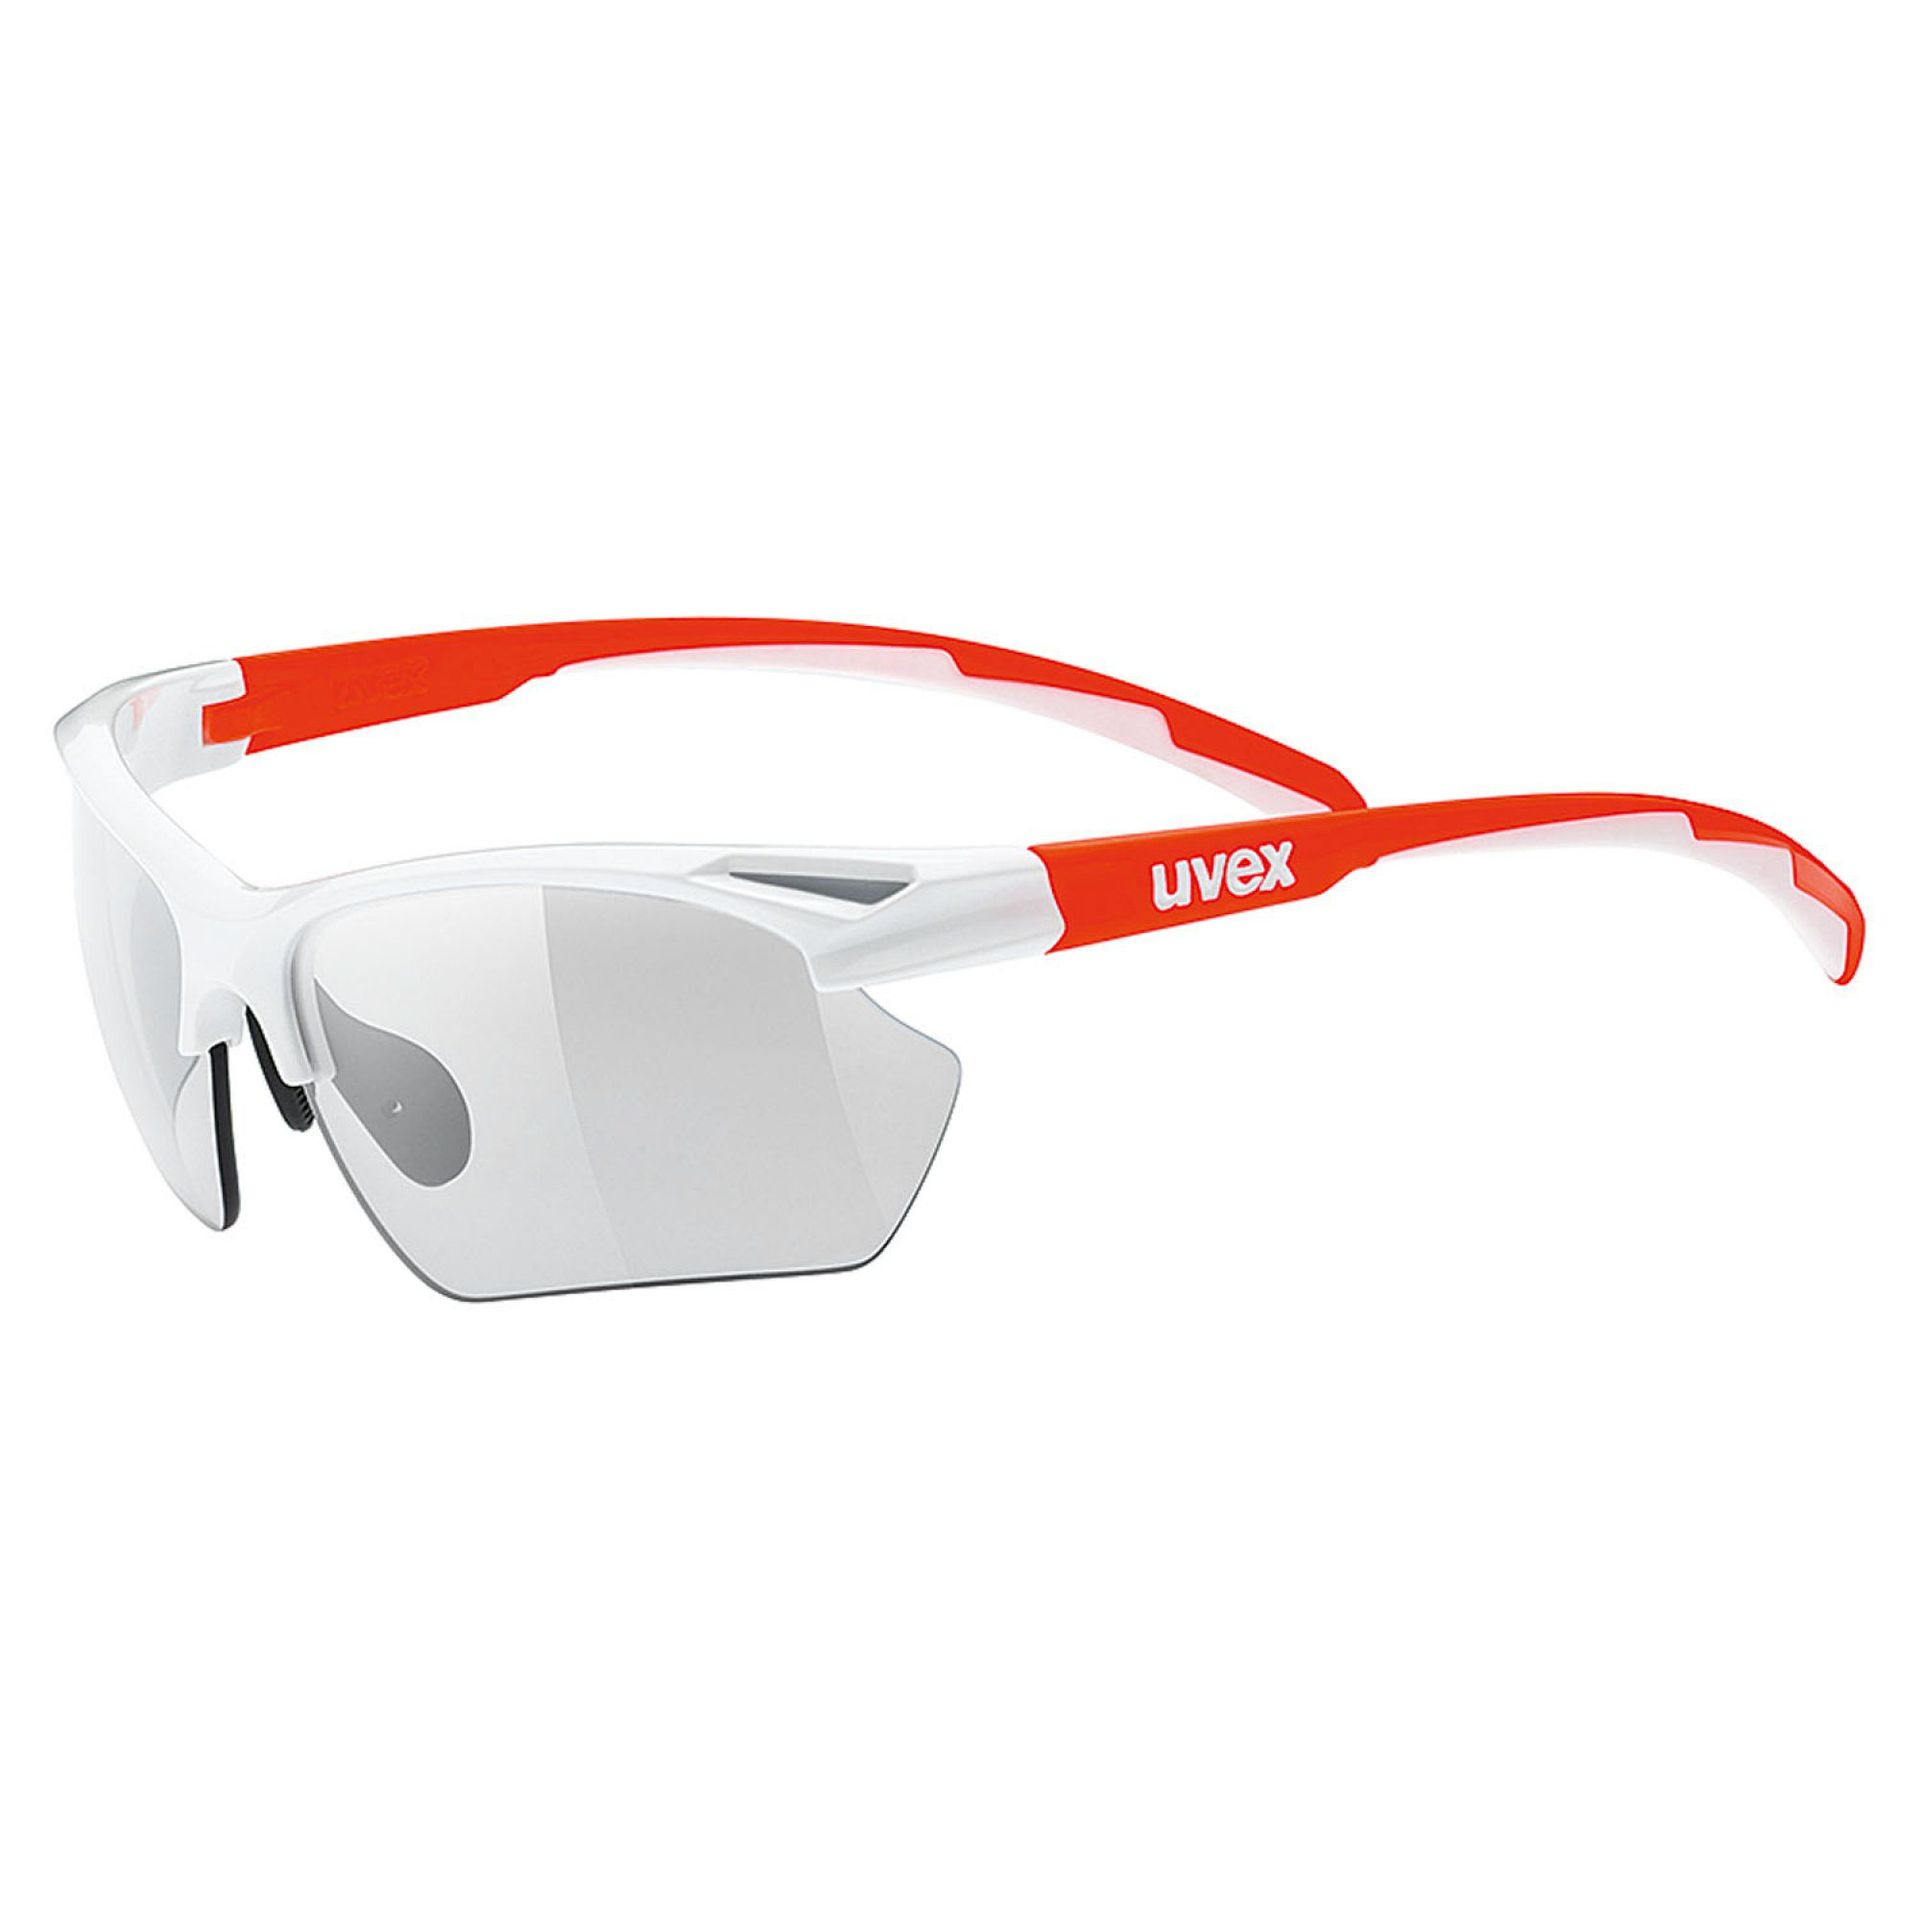 OKULARY UVEX  SPORTSTYLE 802 SMALL V WHITE ORANGE